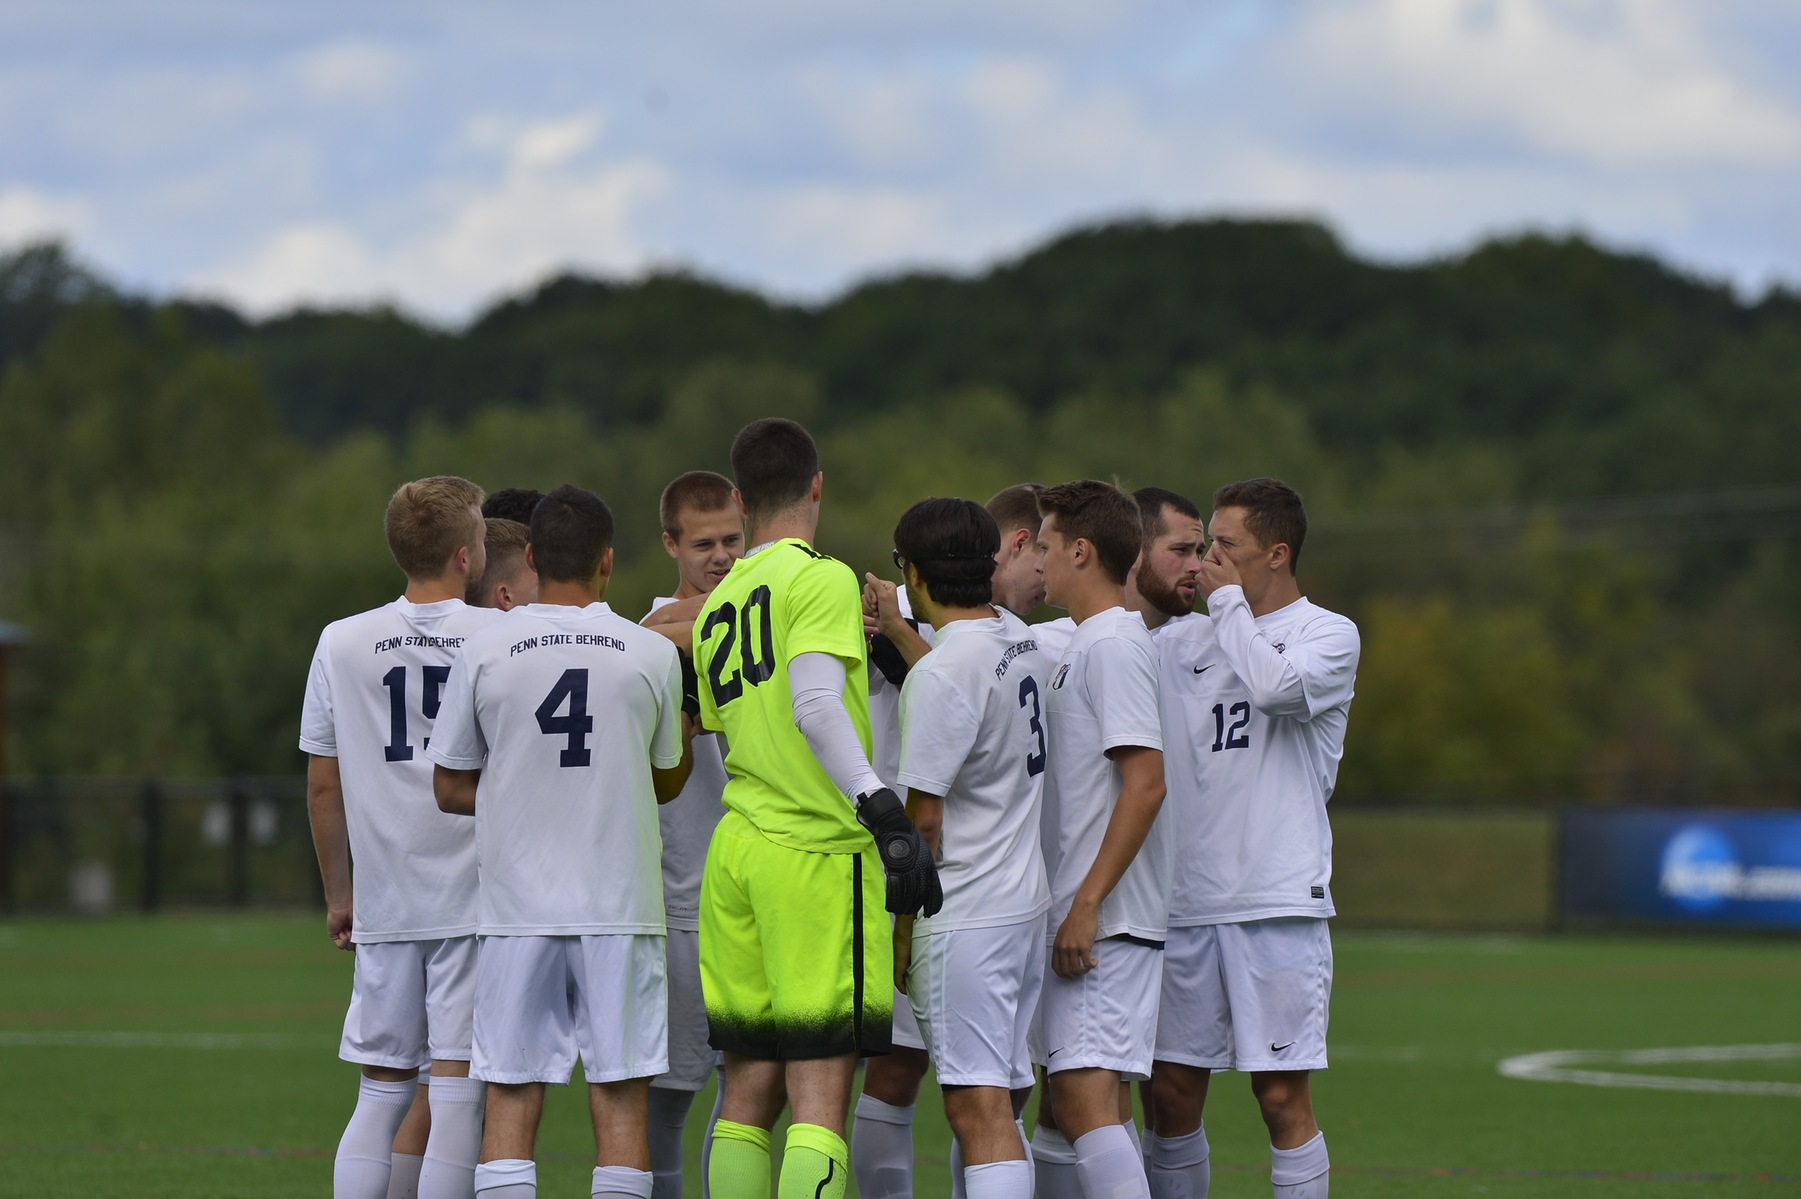 Men's Soccer Takes on Franciscan in AMCC Semifinals